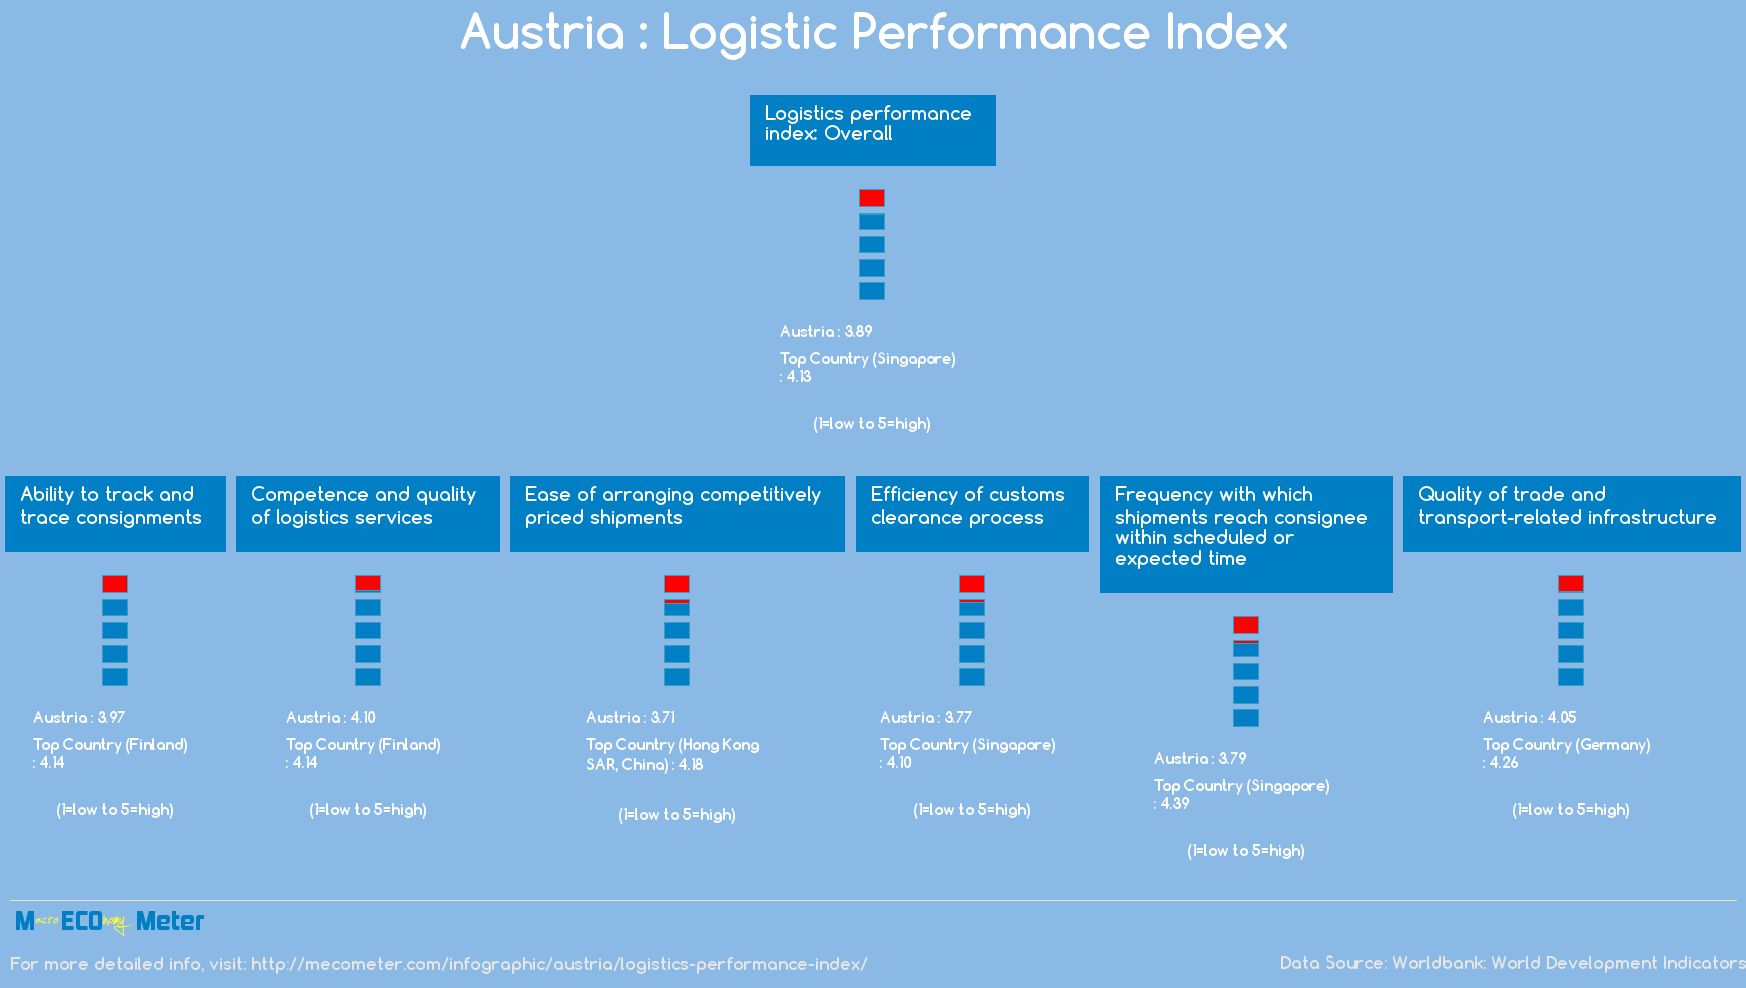 Austria : Logistic Performance Index